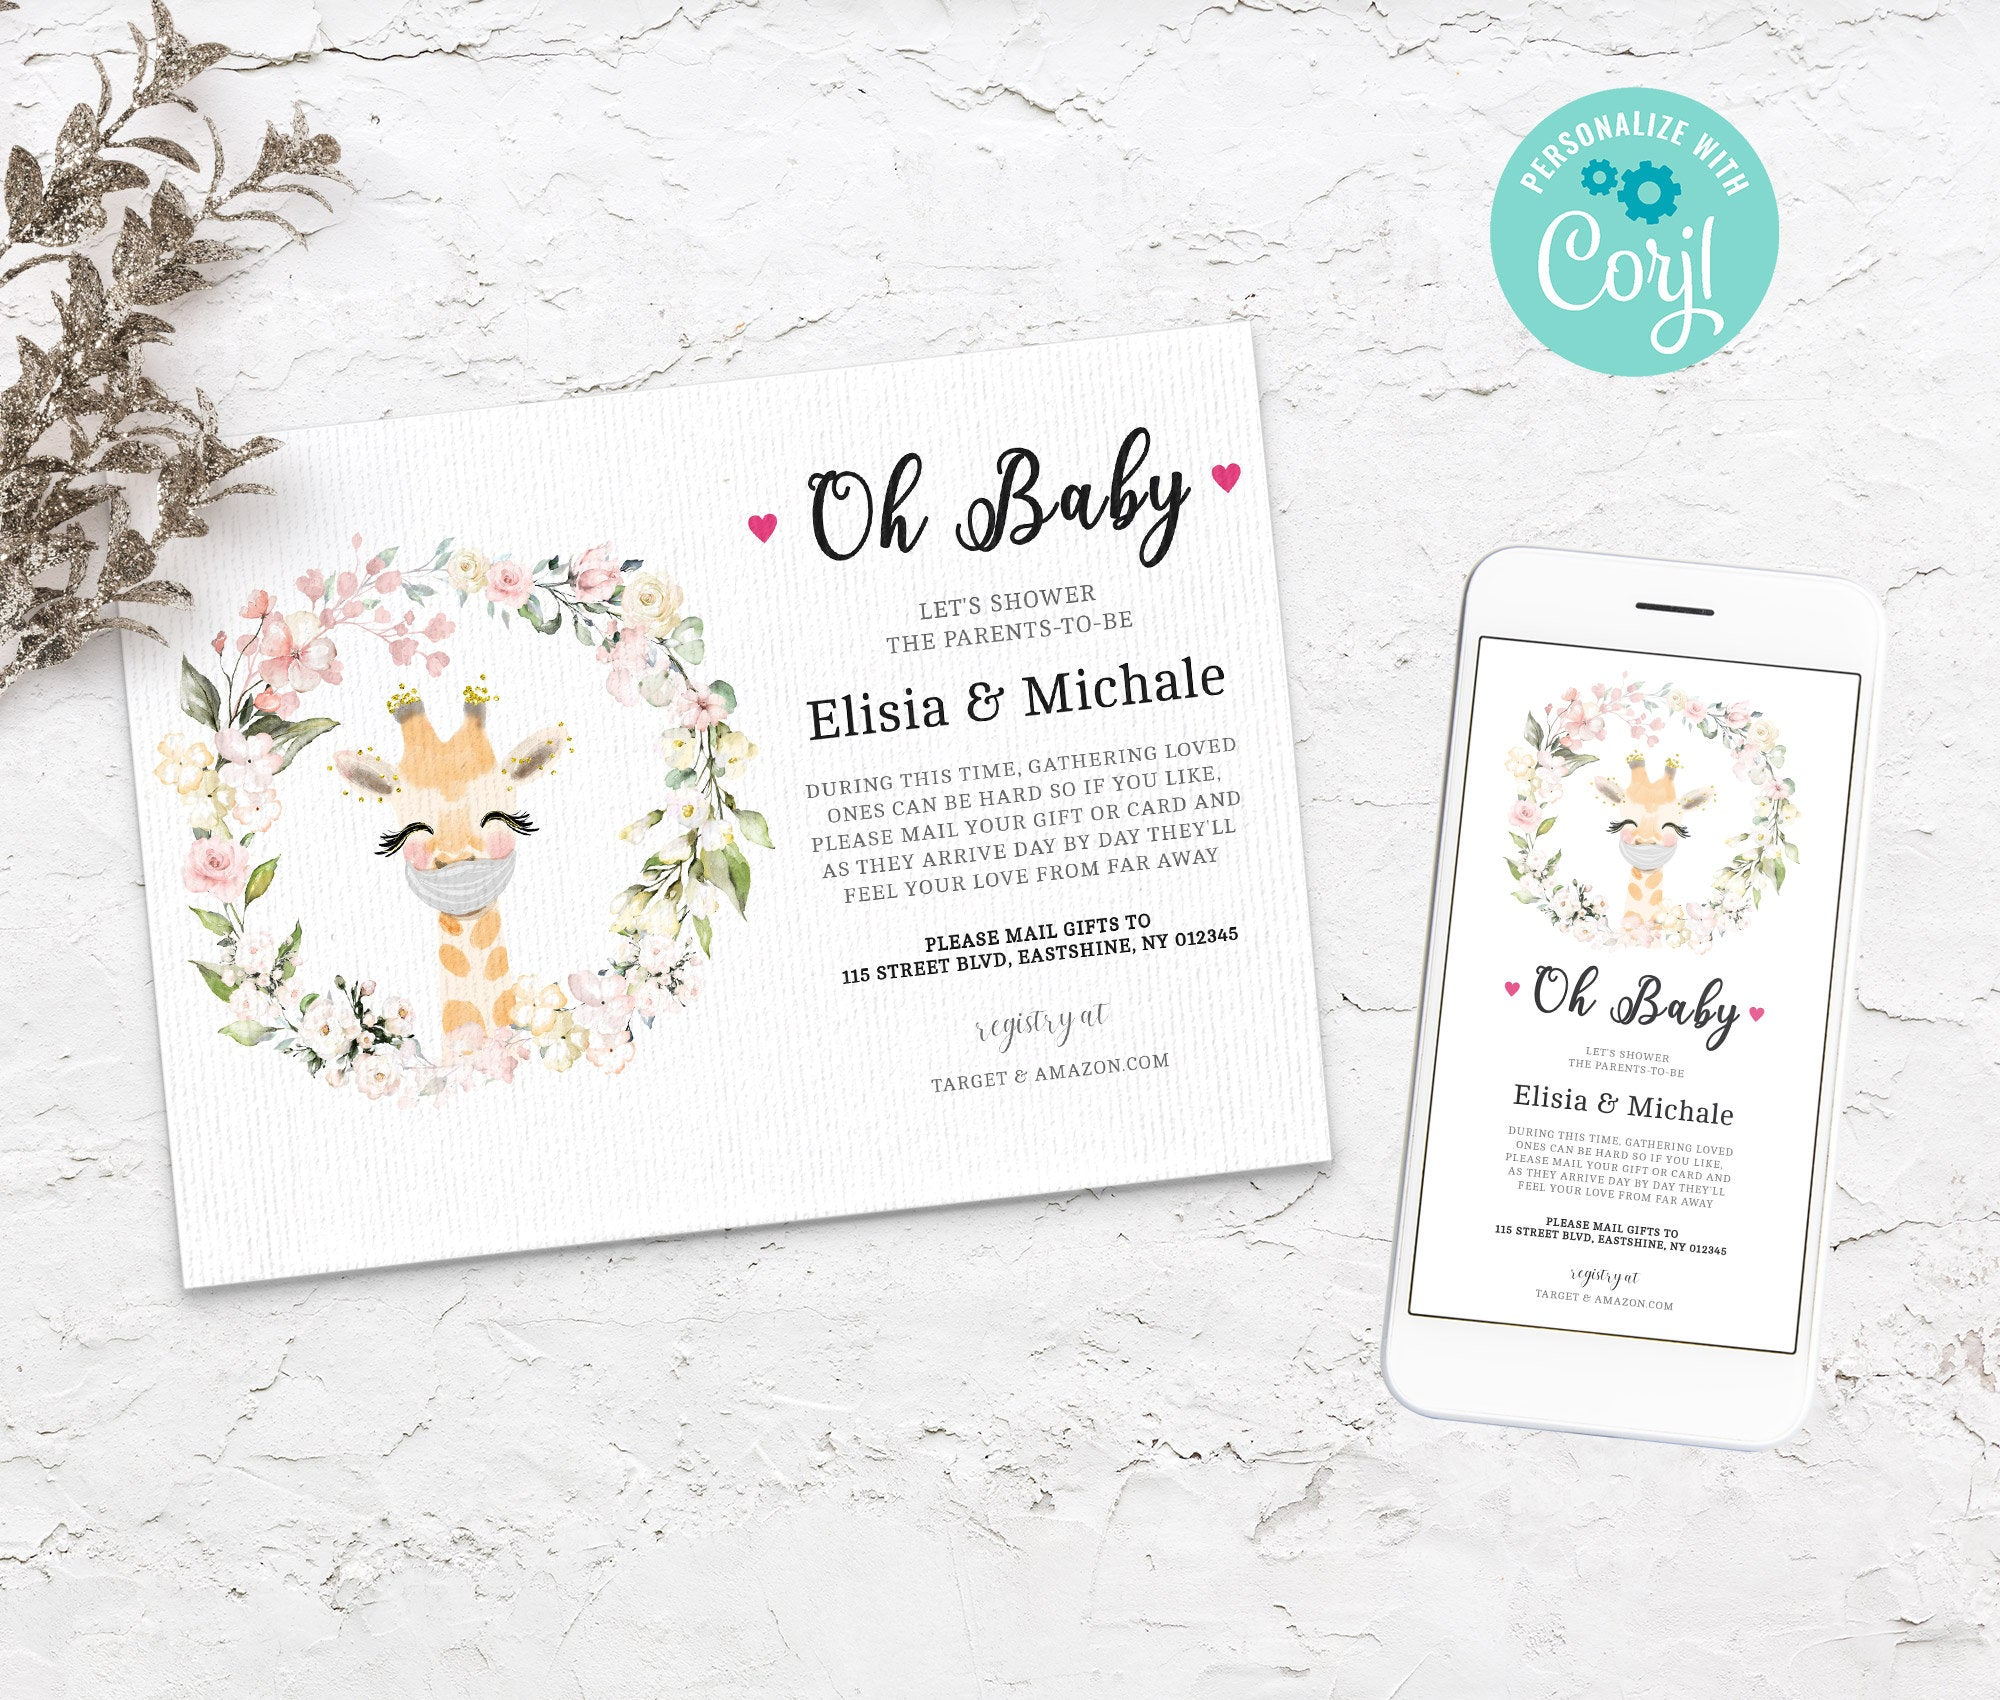 Baby Shower by Mail Template Giraffe, Animal Baby shower invitation, Shower by Mail, Shower Evite, Editable, Instant Download - 3610 BS3601